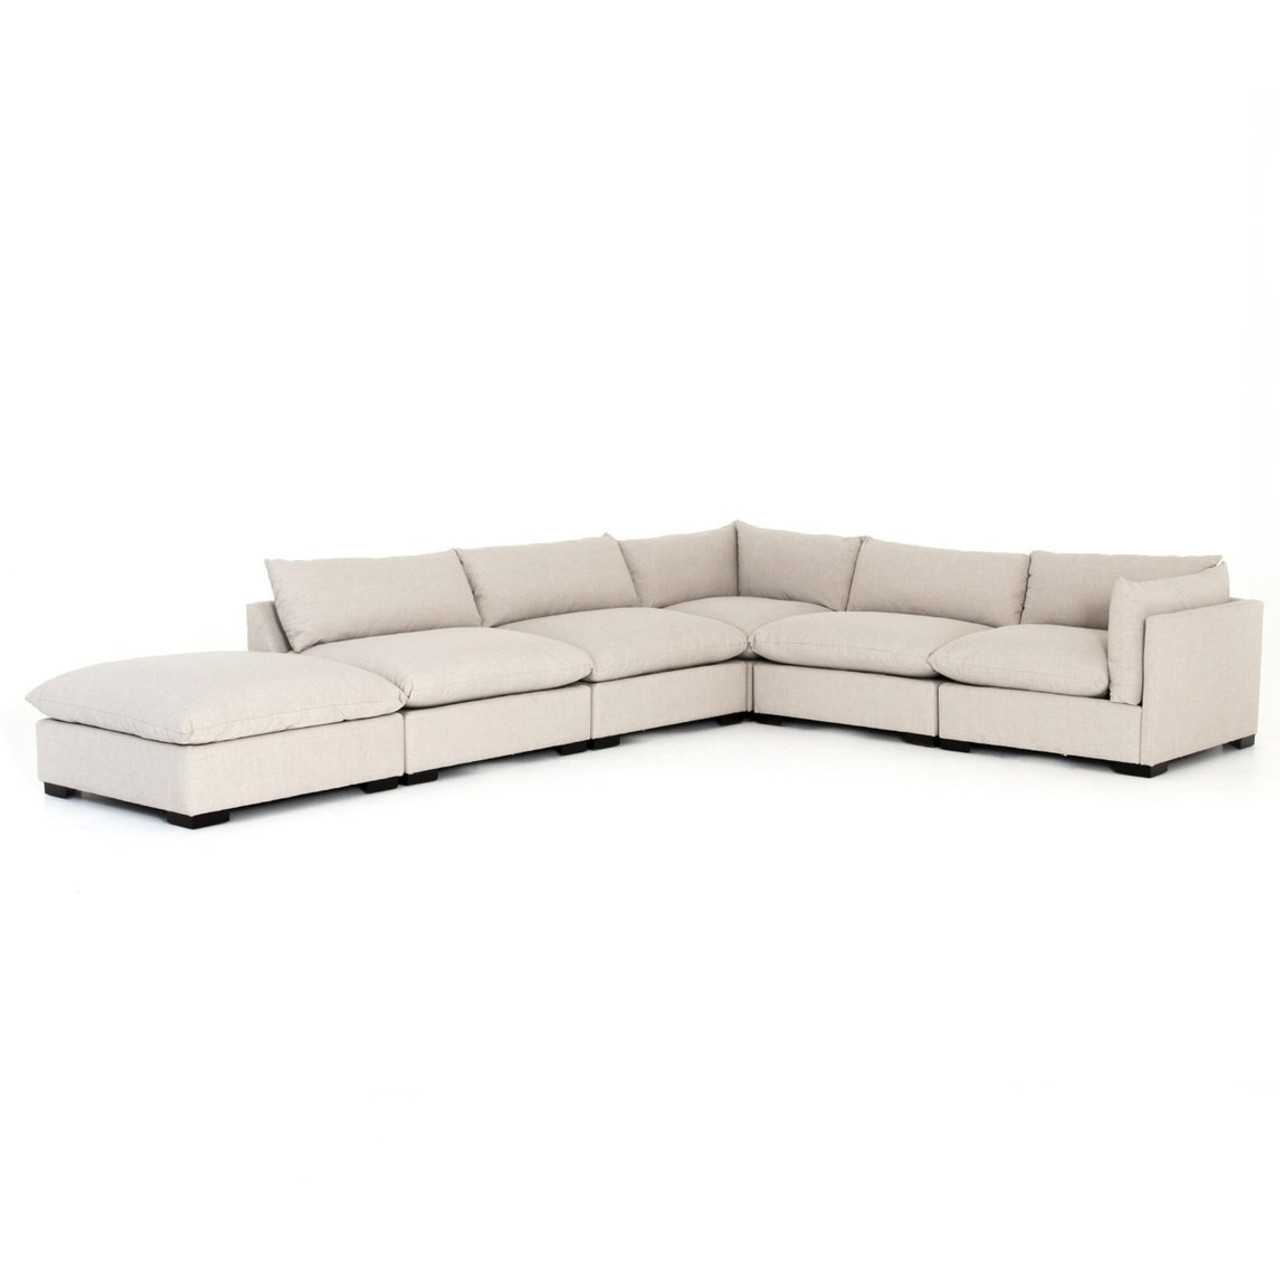 Swell Westworld Modern Beige 6 Piece Modular Sectional Sofa 158 Gmtry Best Dining Table And Chair Ideas Images Gmtryco